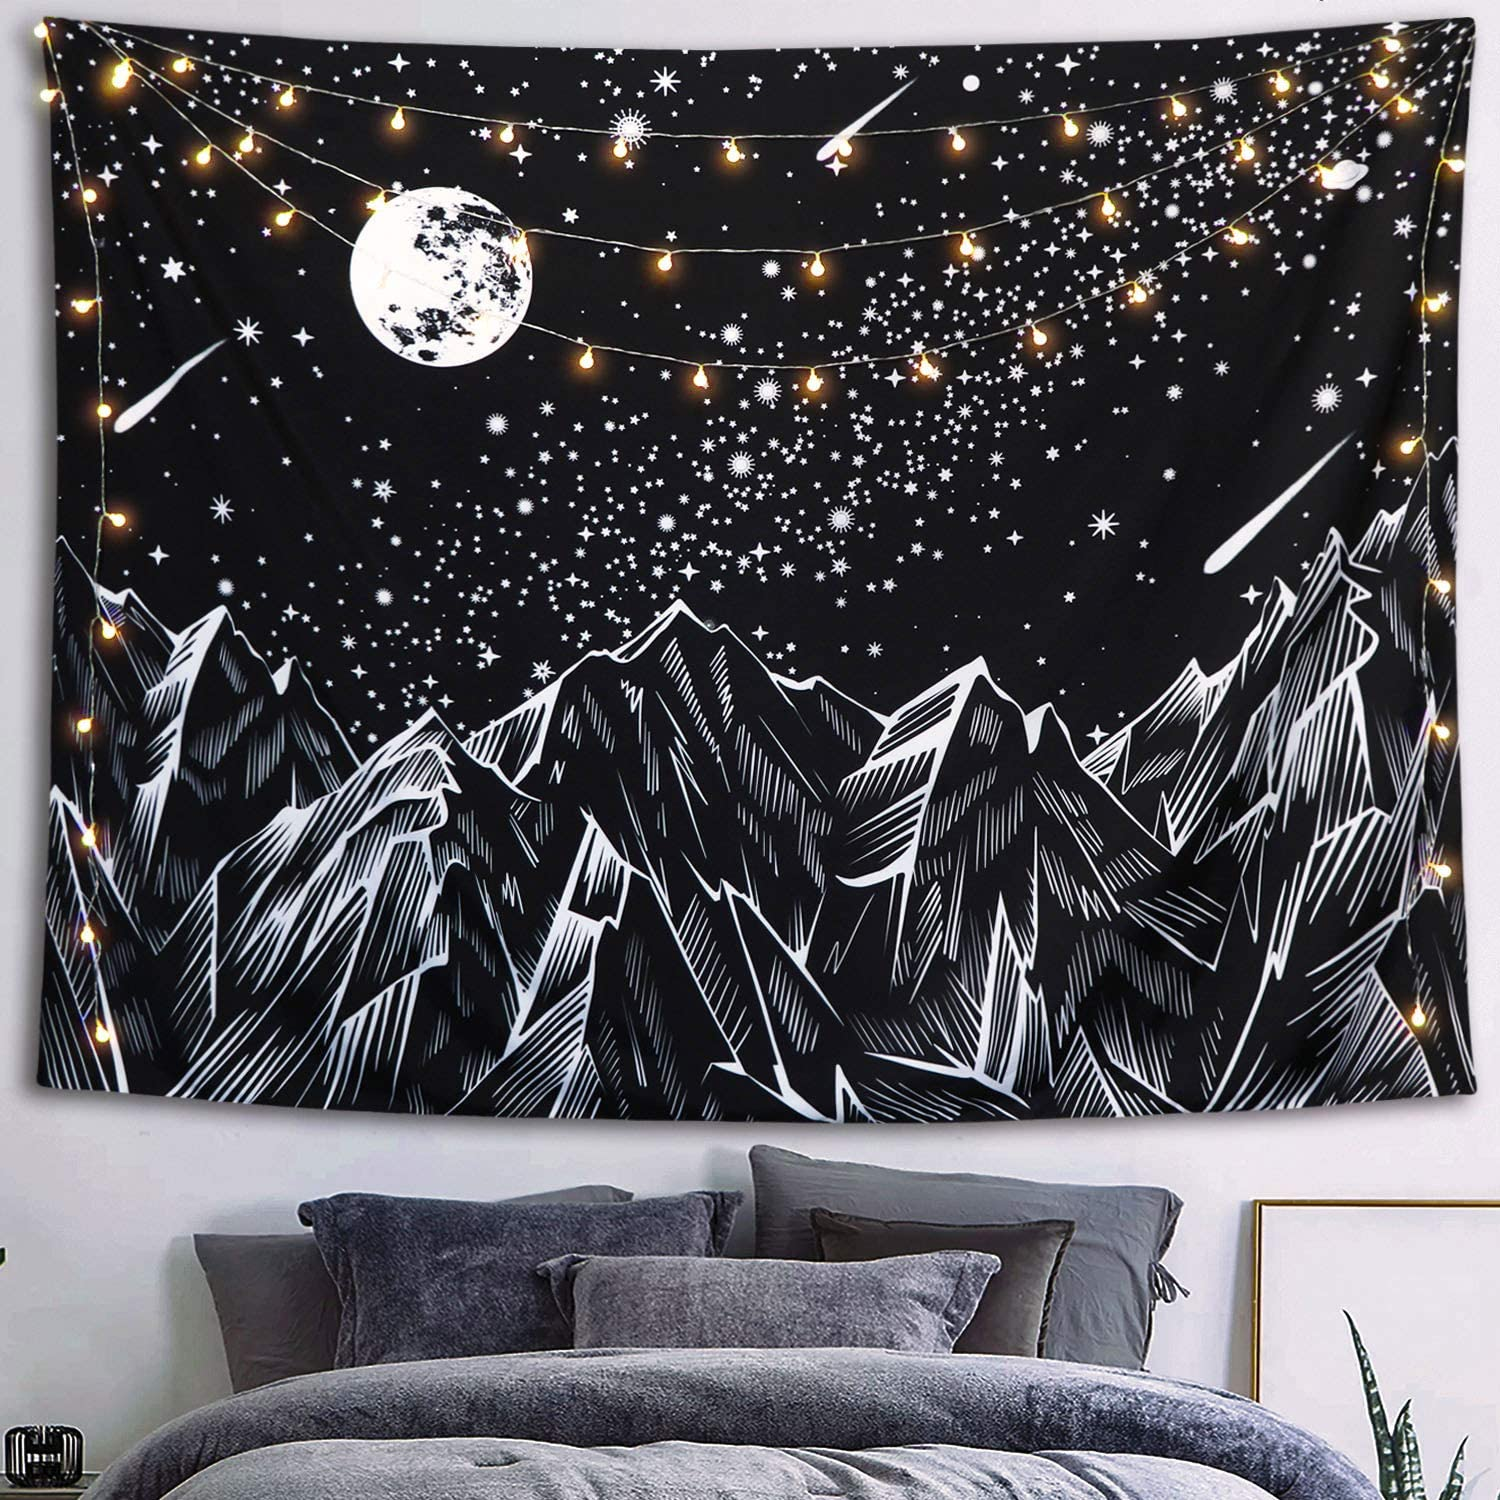 Neasow Moon Mountain Tapestry Wall Hanging, Black and White Nature Starry Night Sky Stars Tapestry with Meteor and Galaxy Bedroom Home Wall Decor 50×60 inches